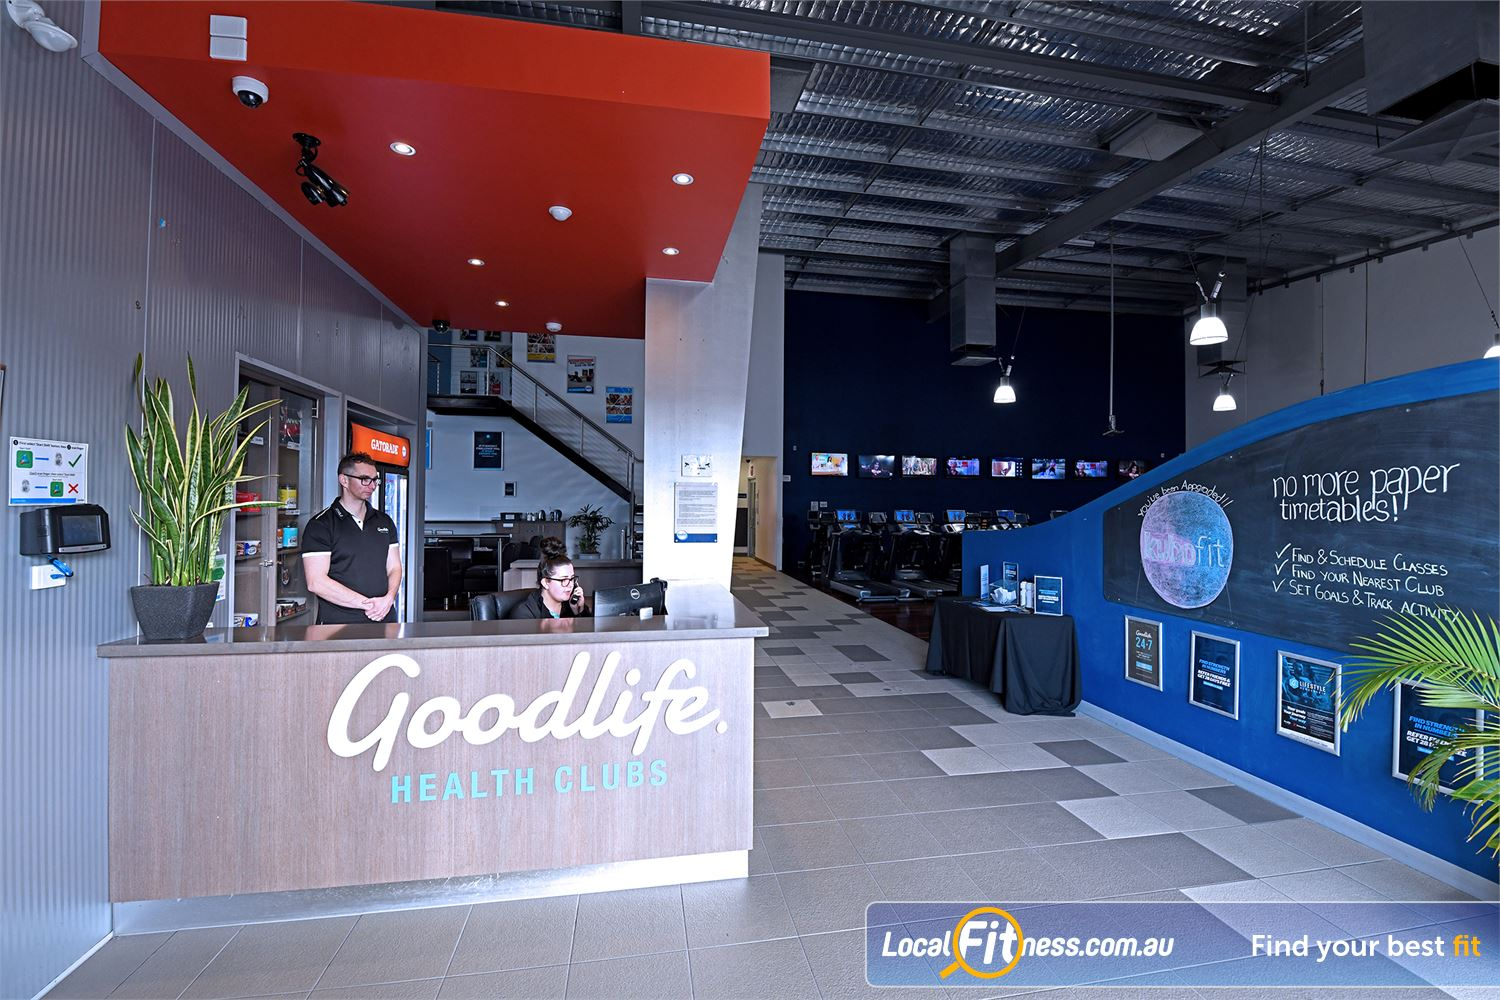 Goodlife Health Clubs Geelong Our friendly team are ready to help you reach your goals at Goodlife Geelong.